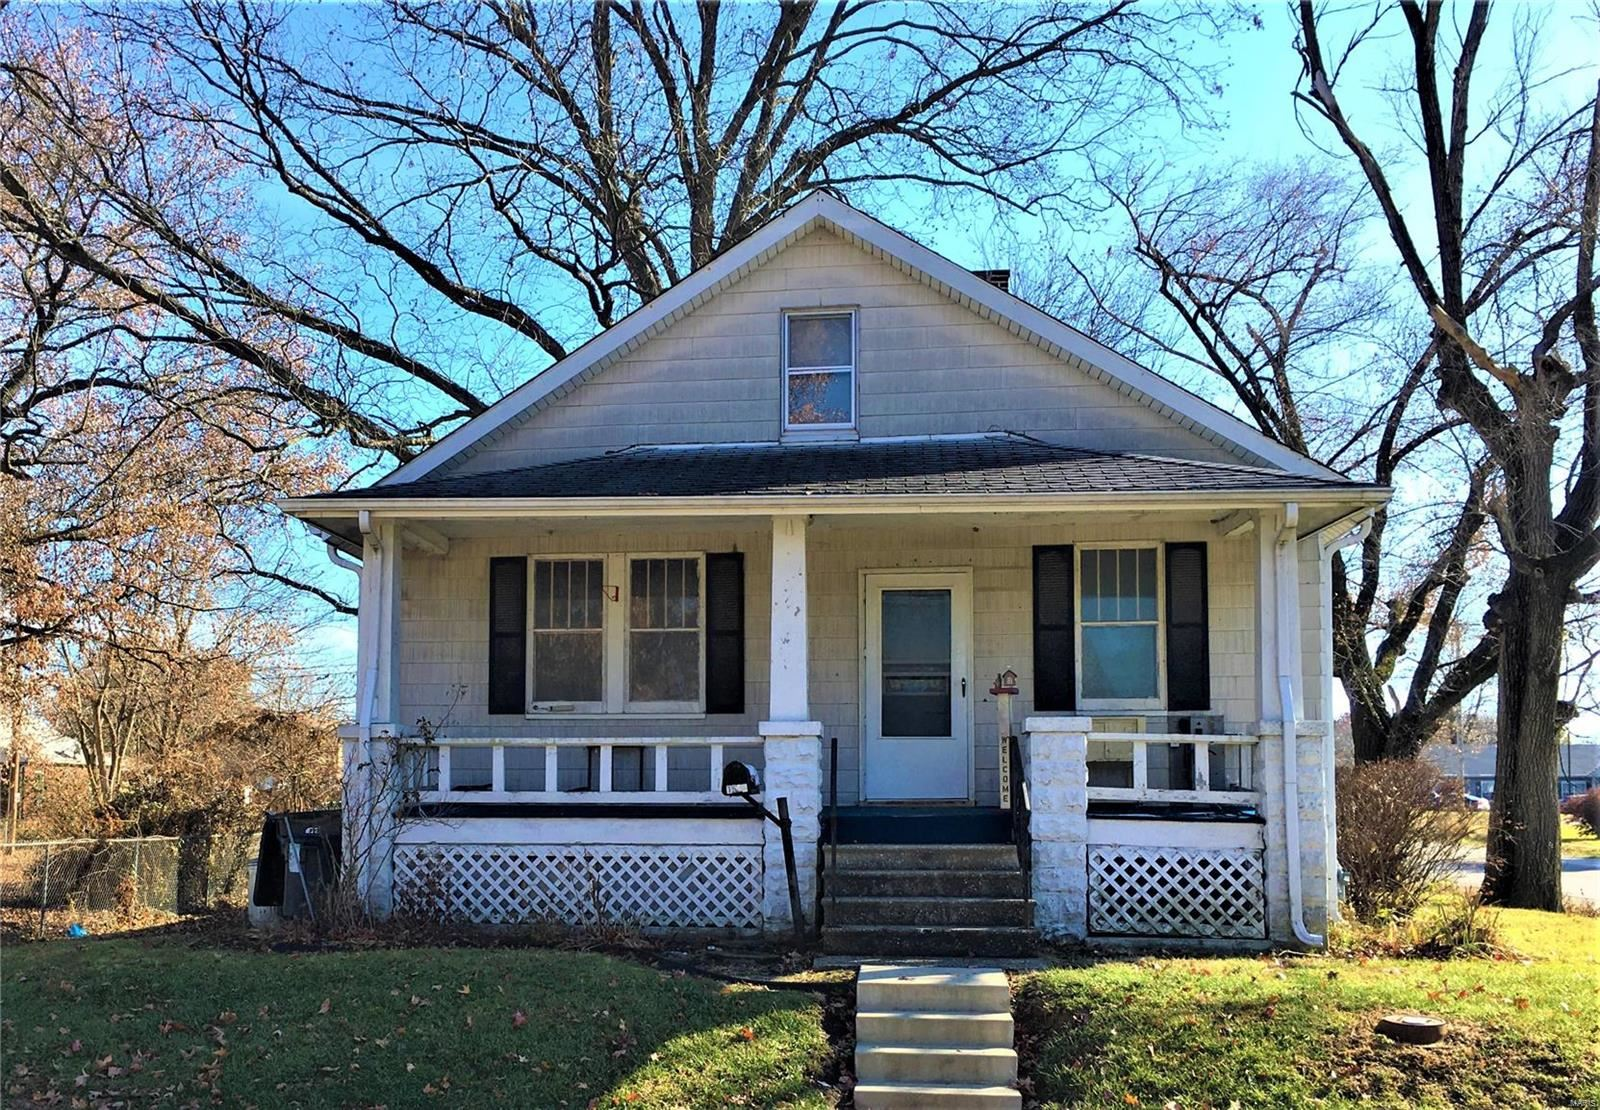 1900 East Belle Avenue, Belleville, IL 62221 - MLS#: 19086425